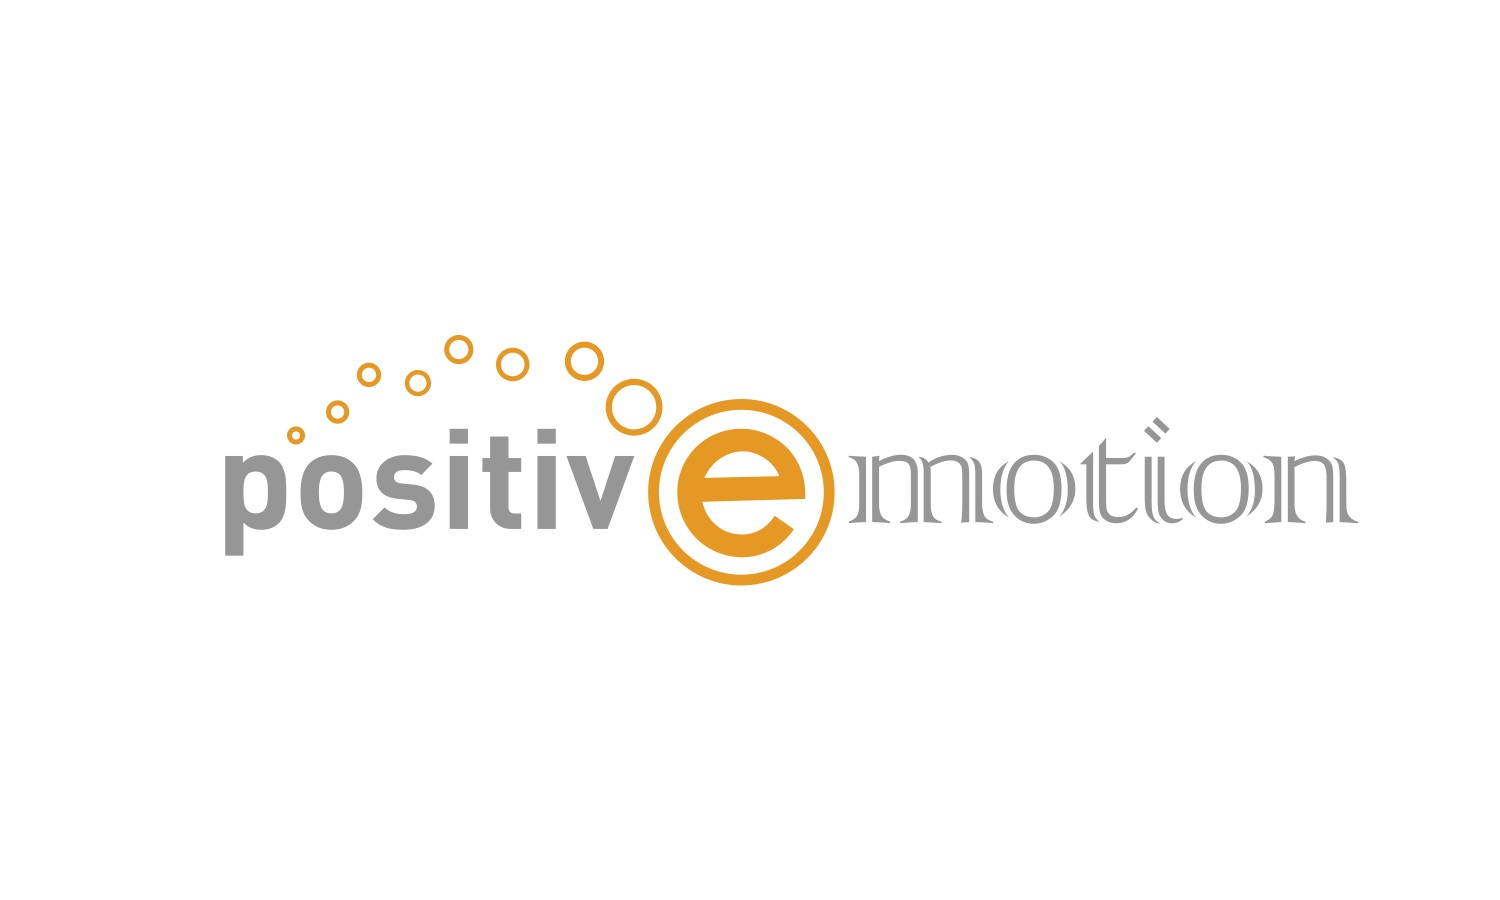 PositiveMotion